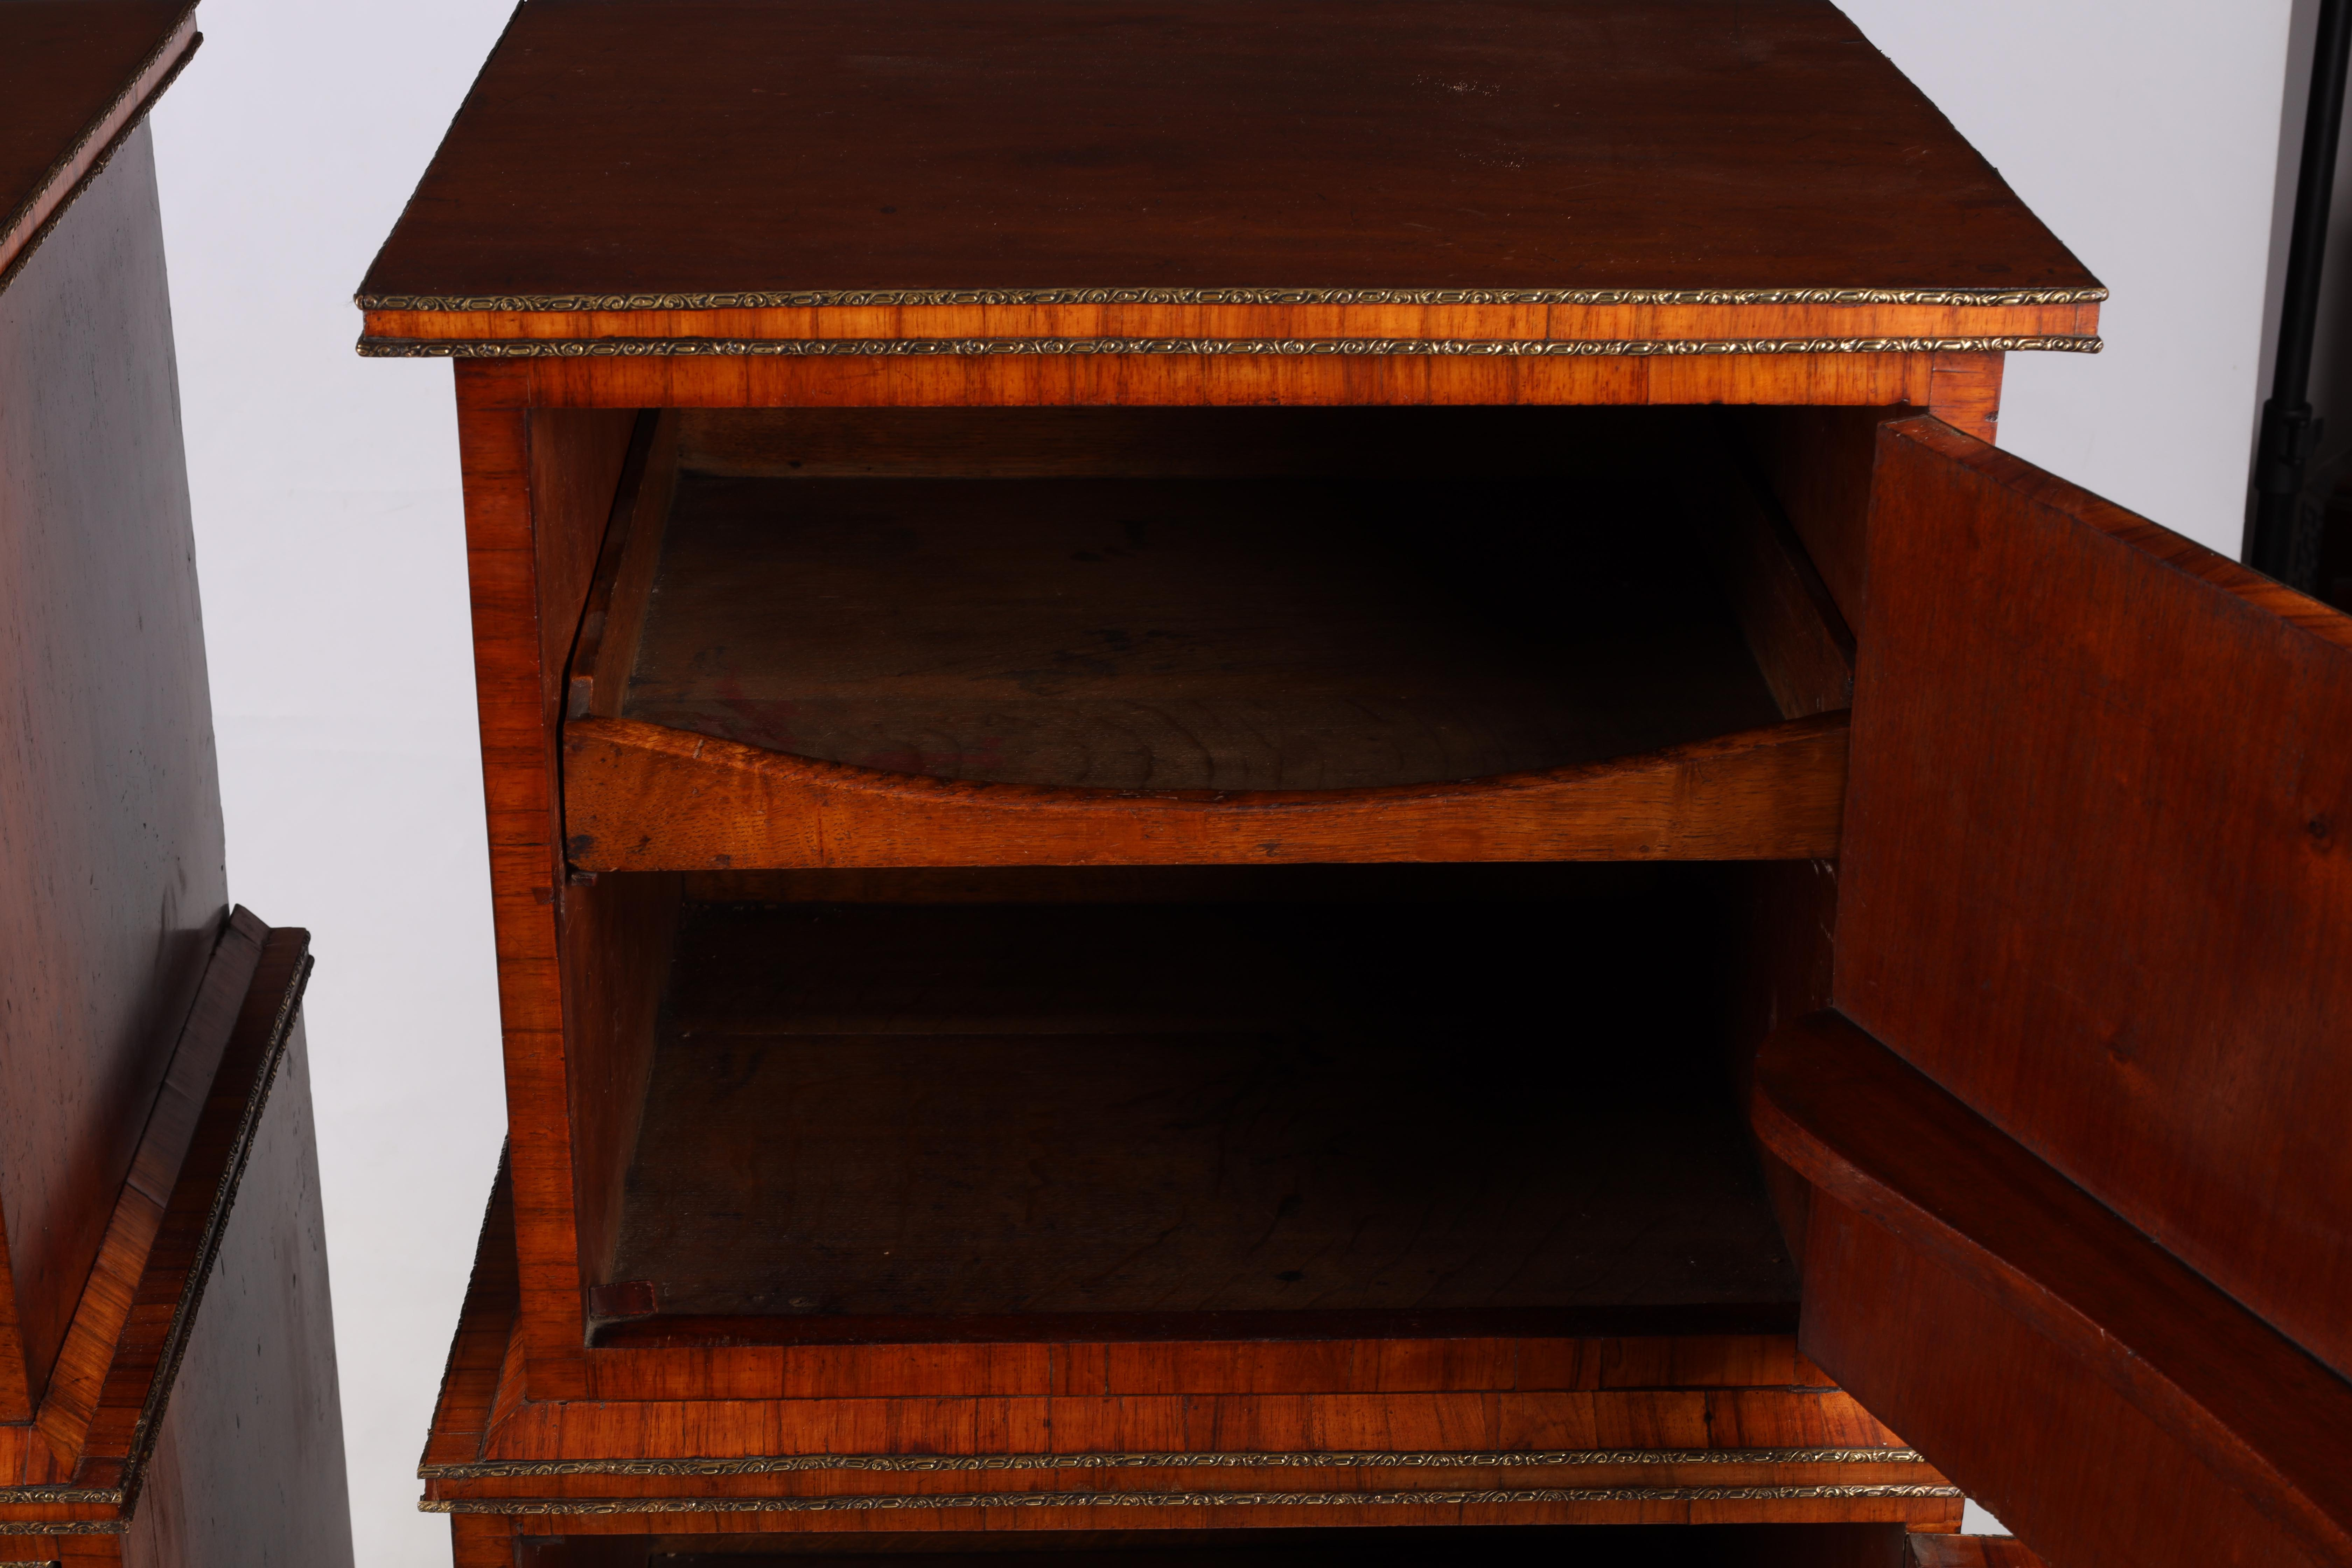 A LARGE PAIR OF GEORGE III KINGWOOD BANDED MAHOGANY PEDESTALS with unusual pen work panels depicting - Image 7 of 11